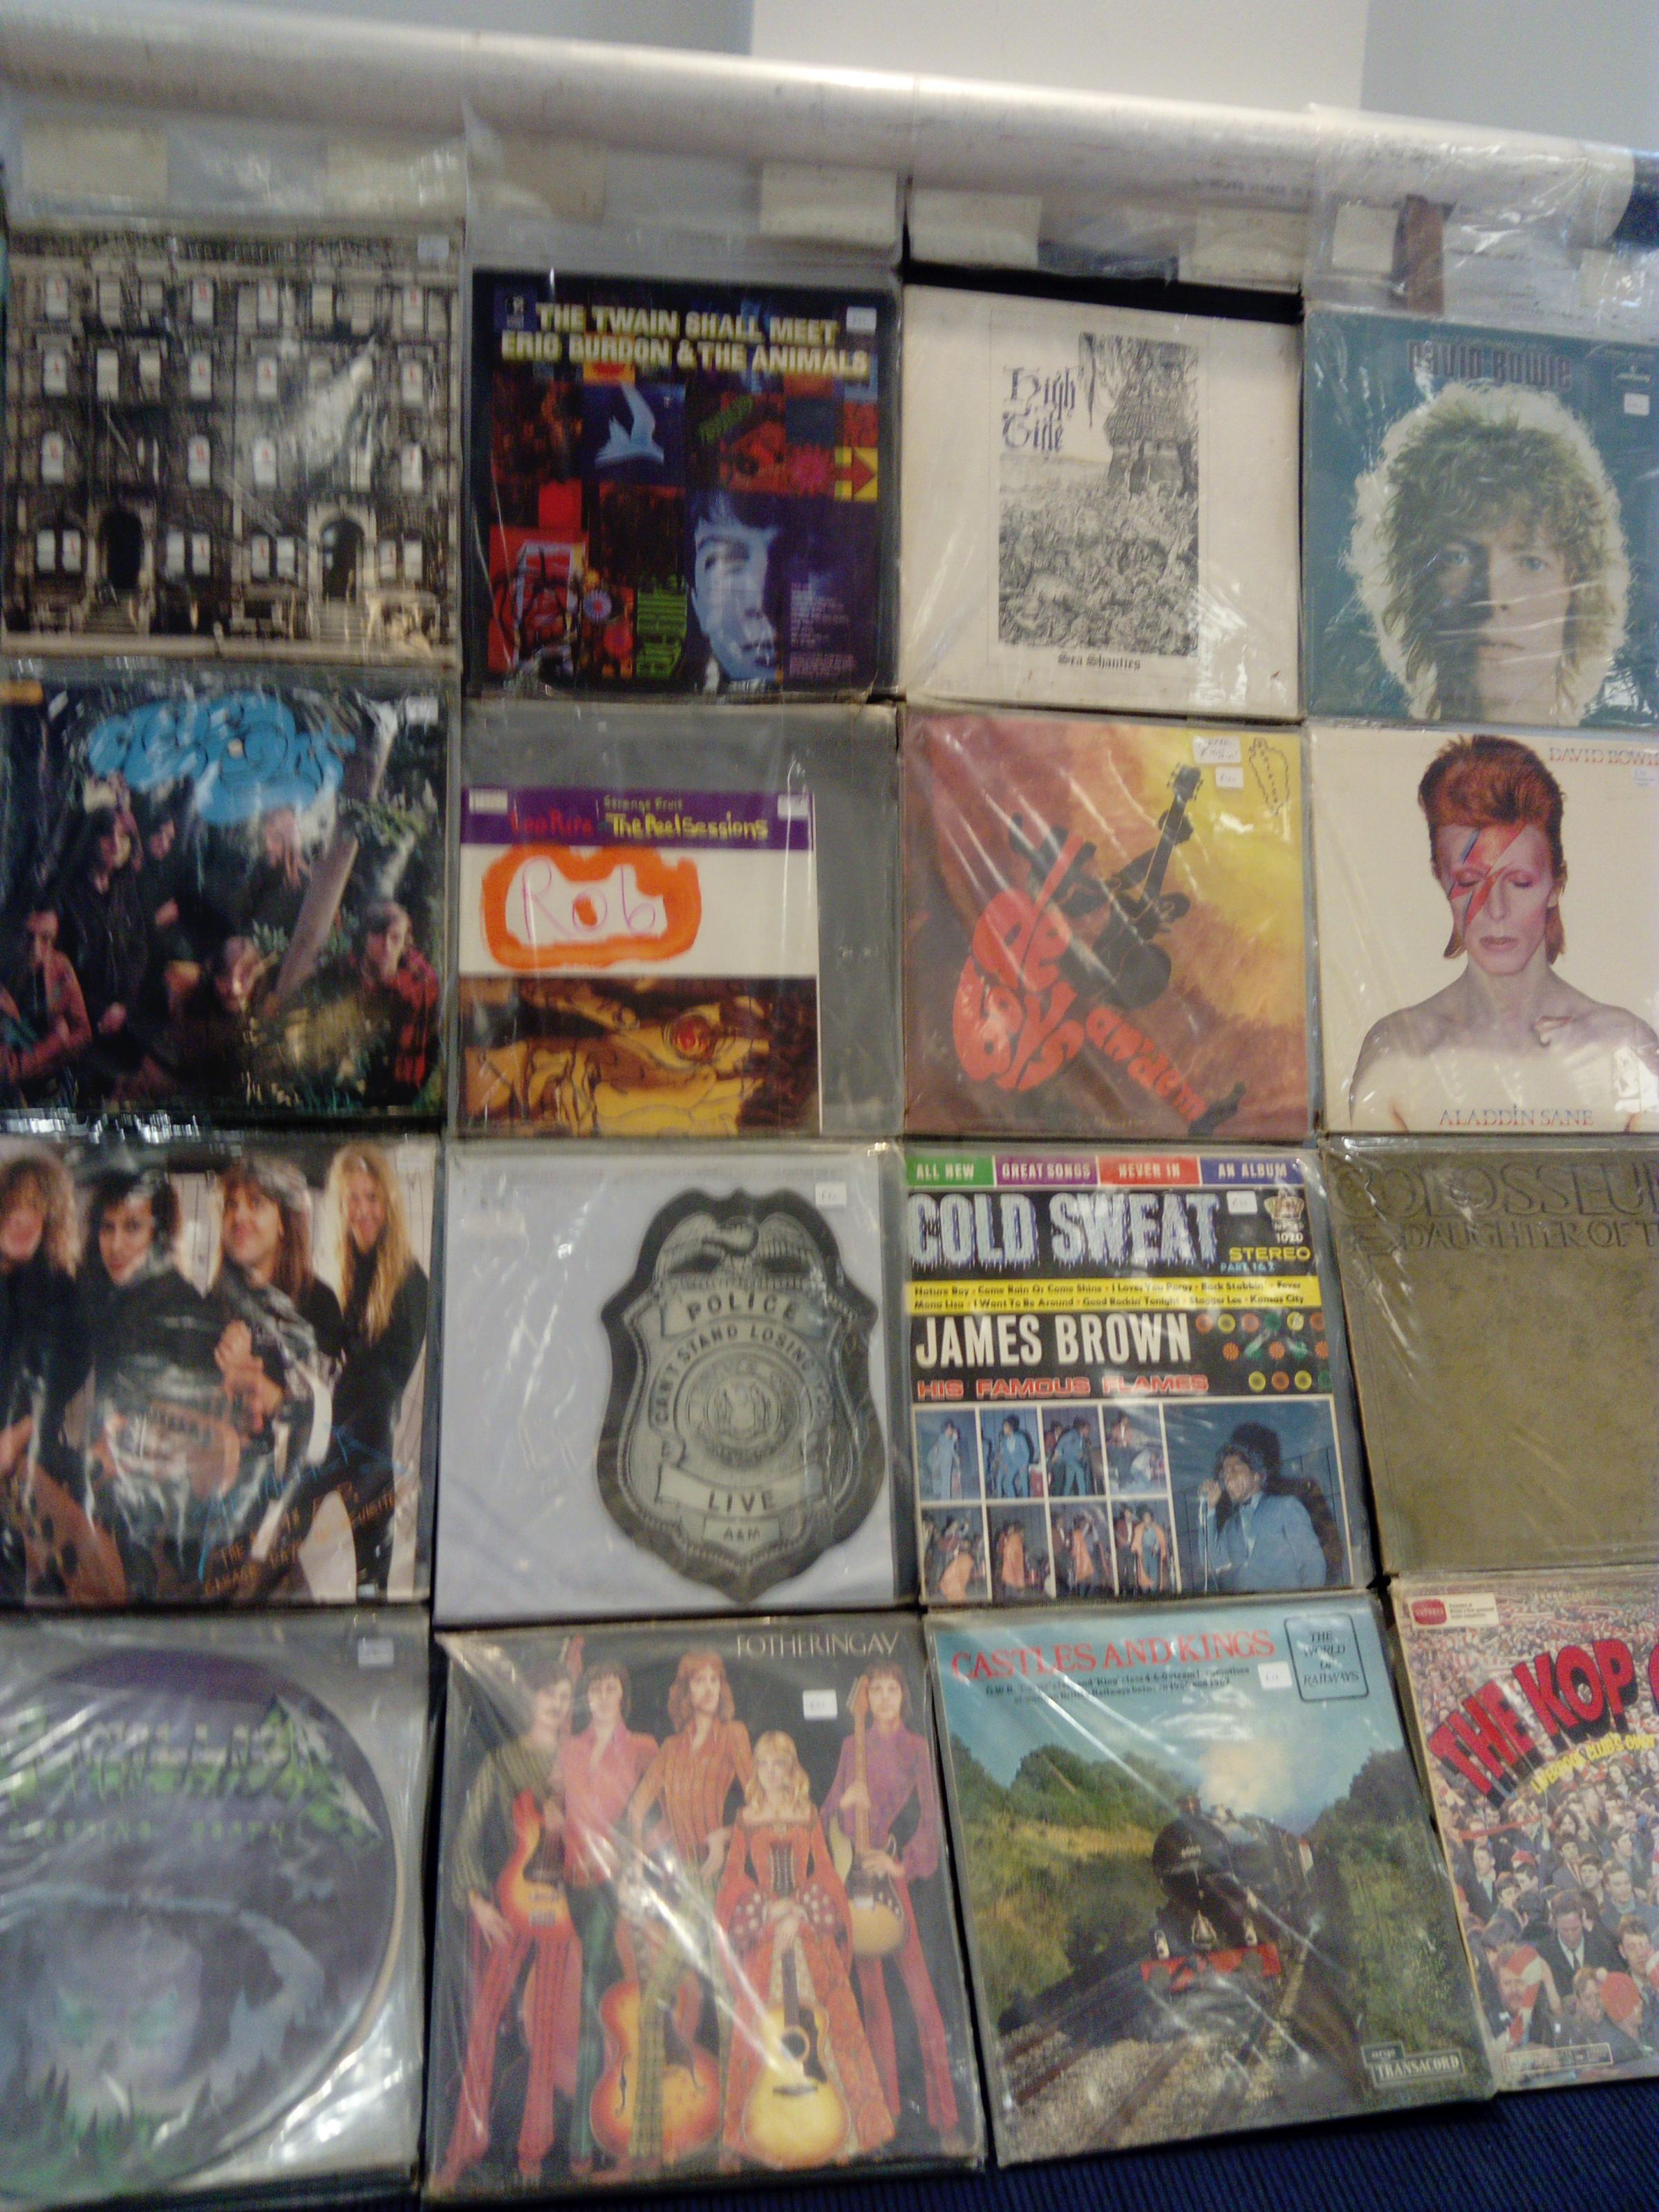 Hay-on-Wye Record and CD Fair